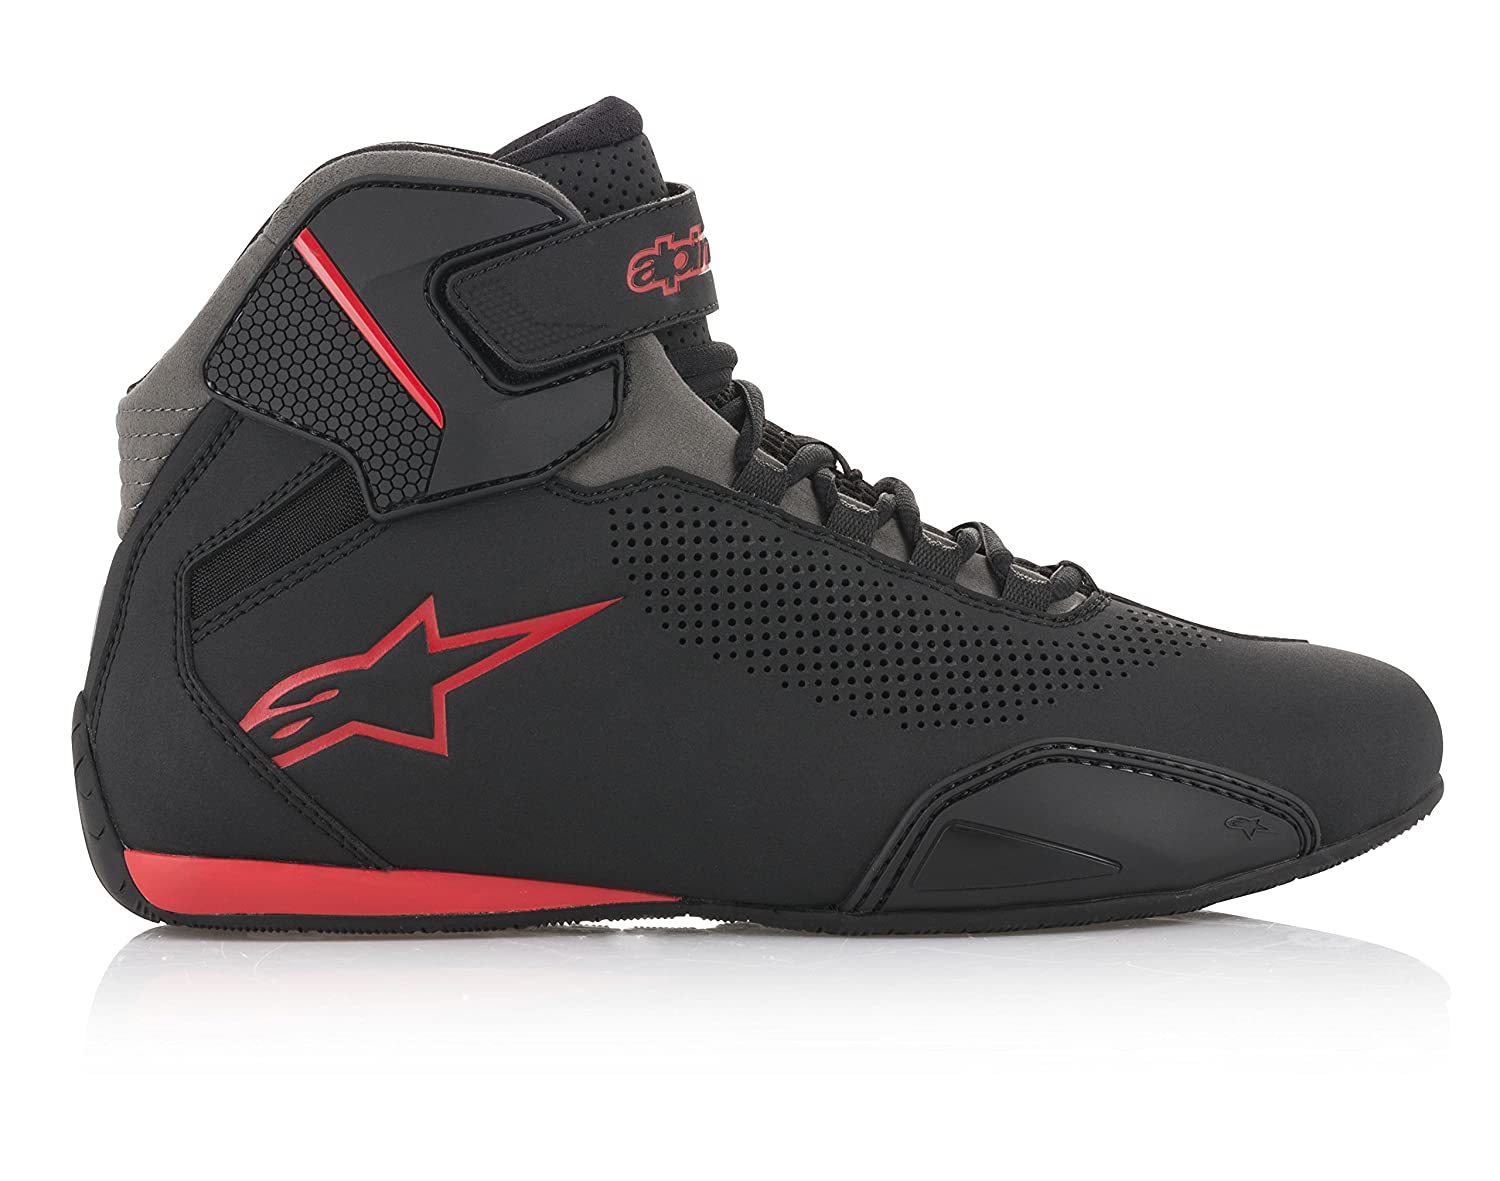 Alpinestars Mens 251561813111 Shoe Black//Grey//Red Size 11